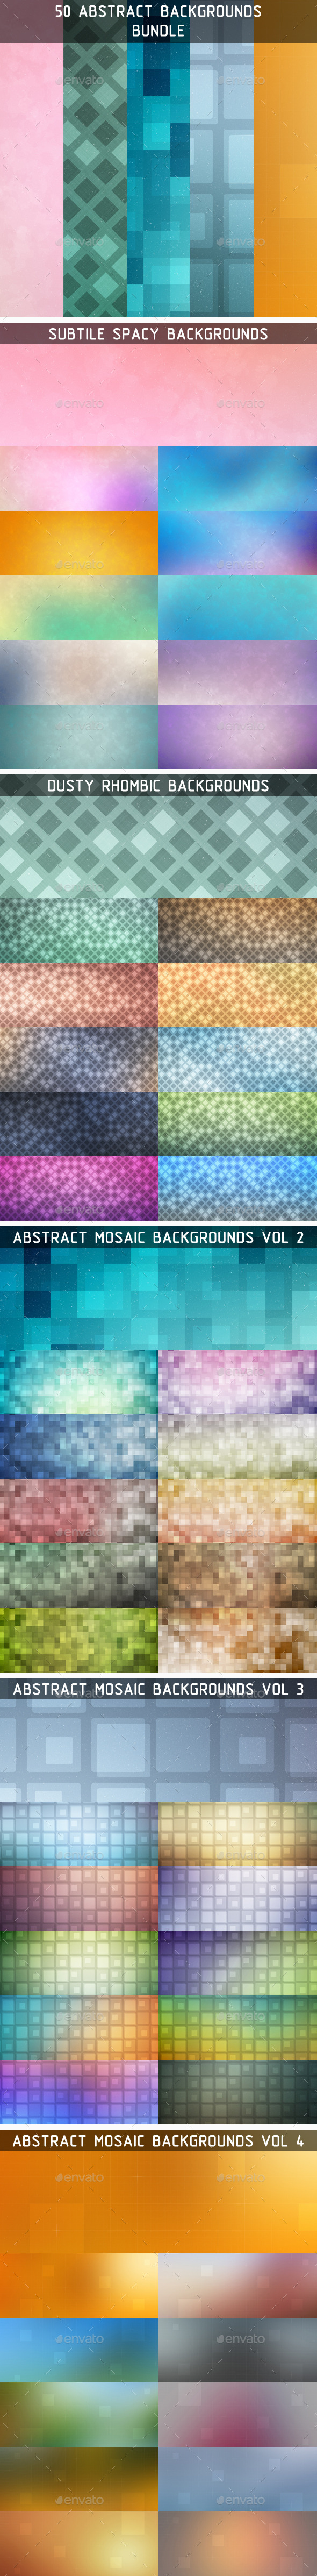 GraphicRiver 50 Abstract Backgrounds Bundle 10884384